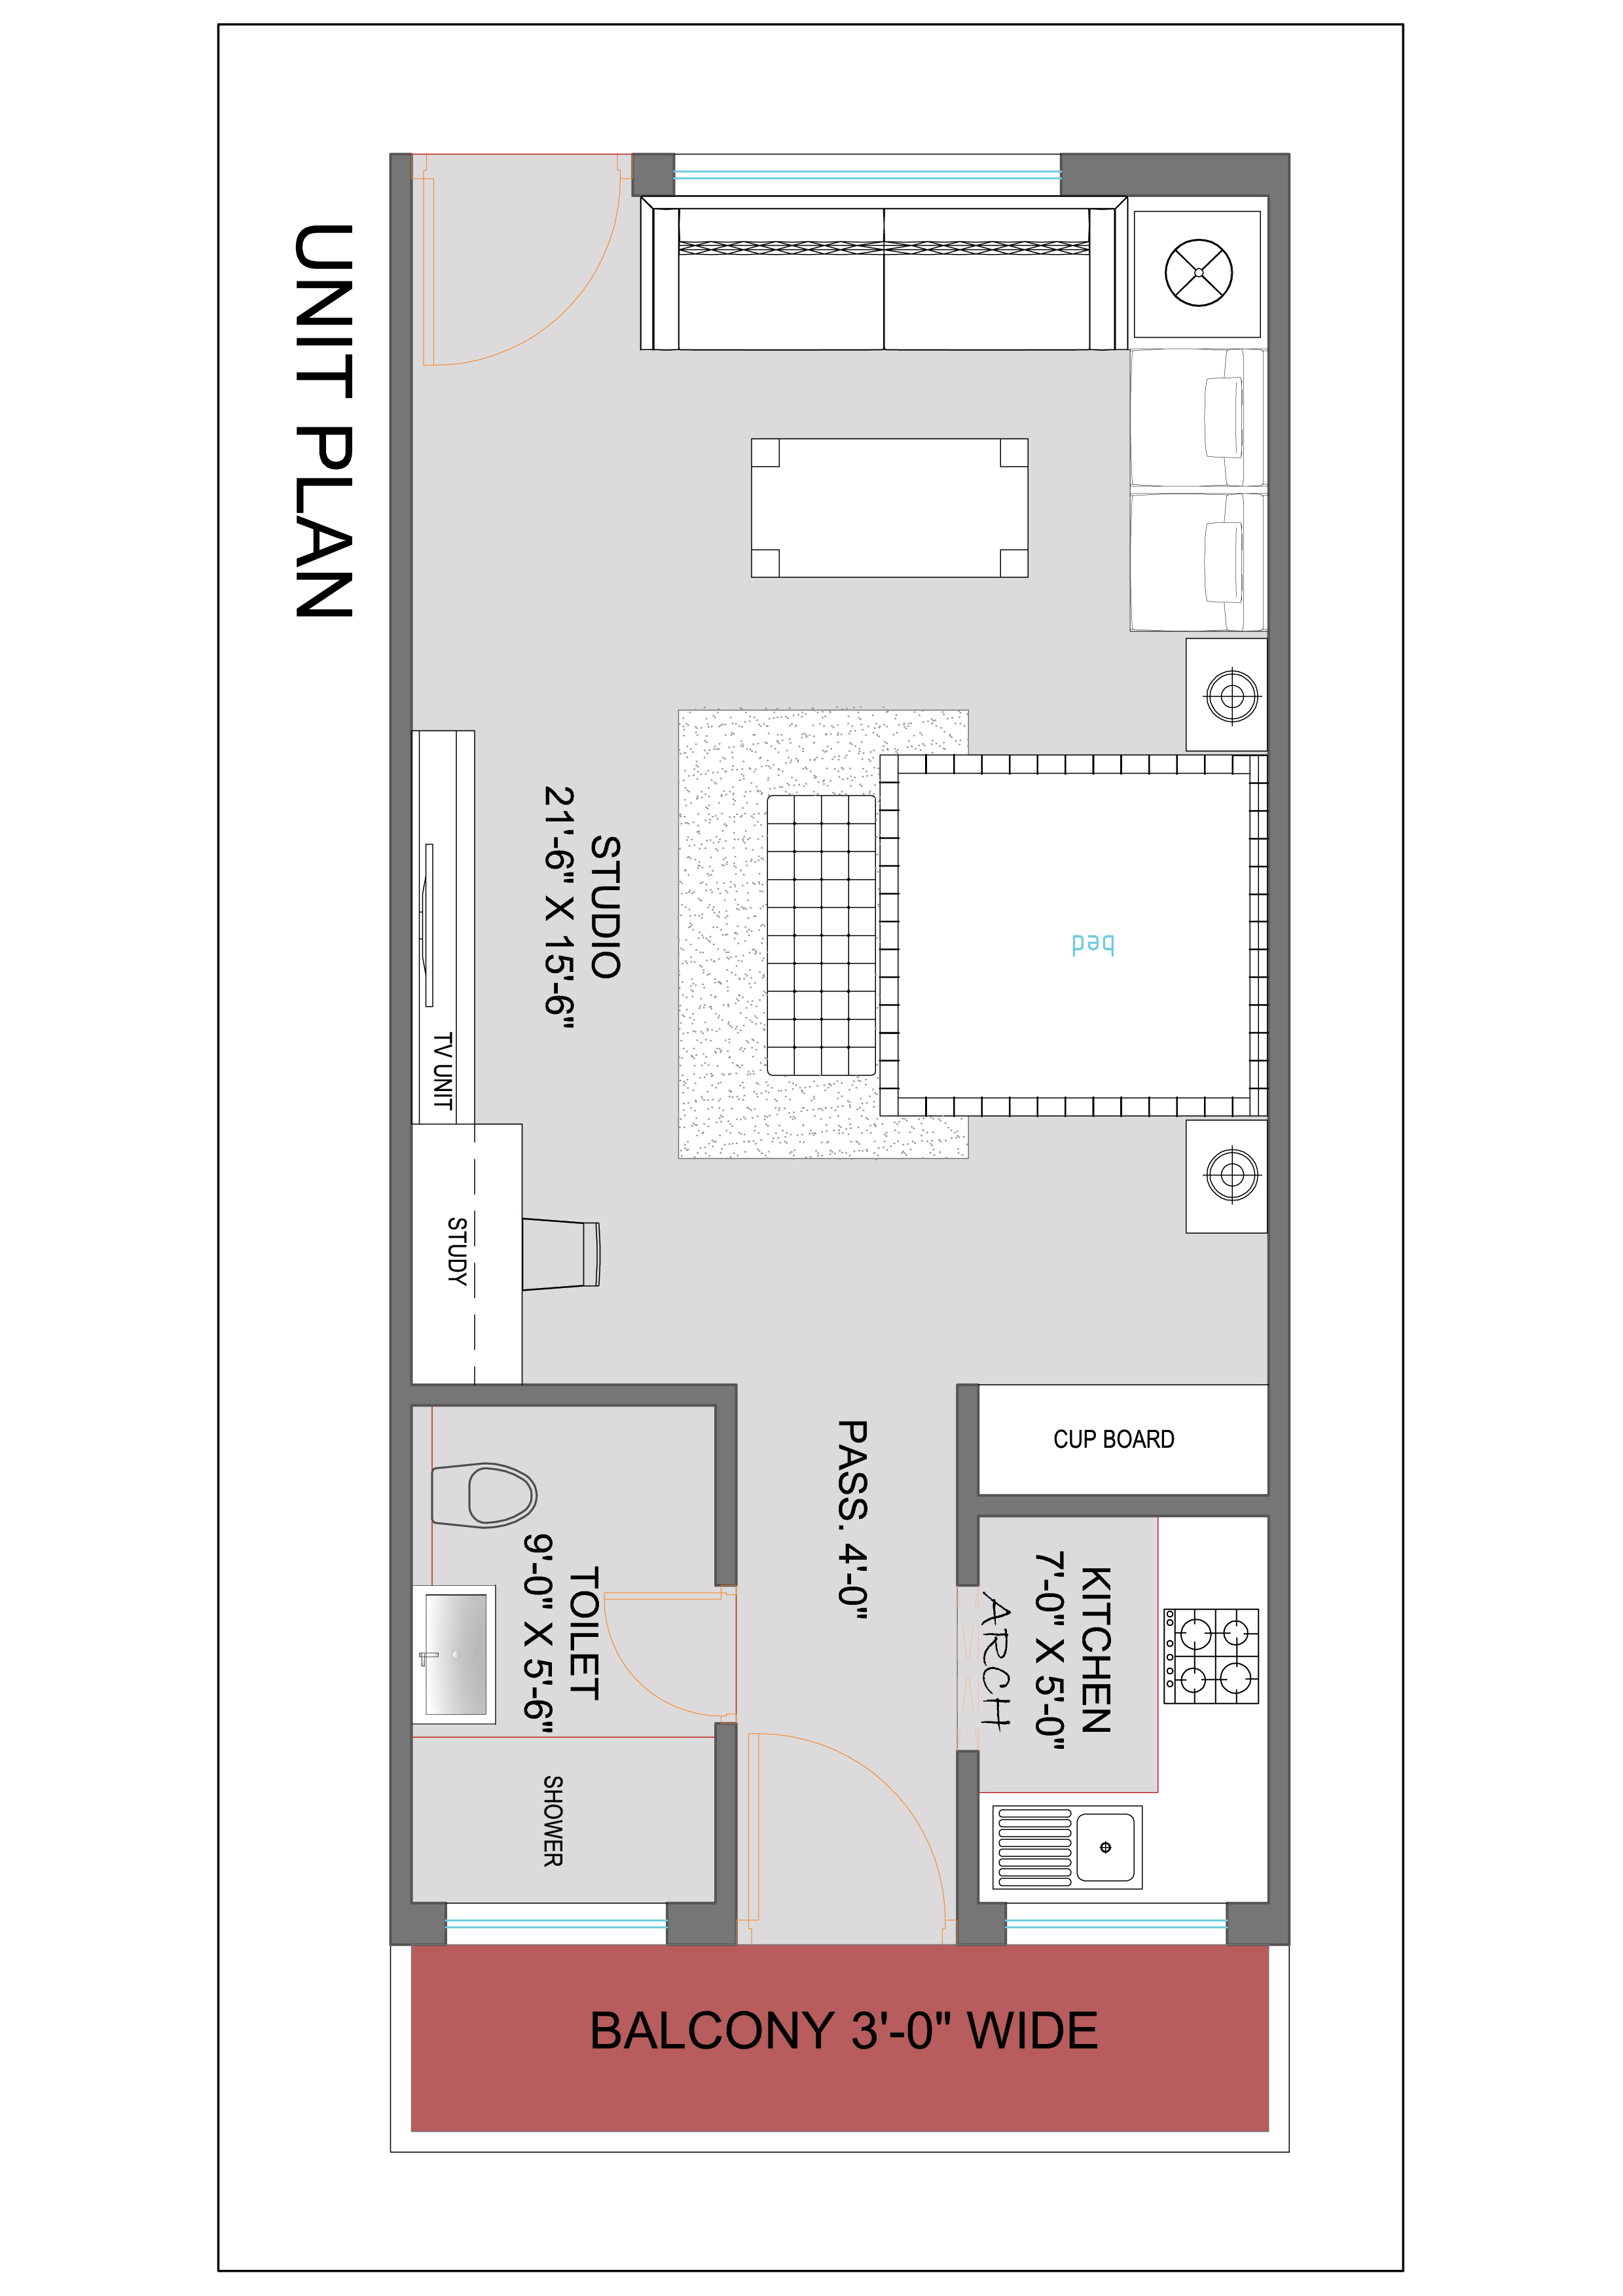 Nirman apartments noida location for 780 square feet house plan